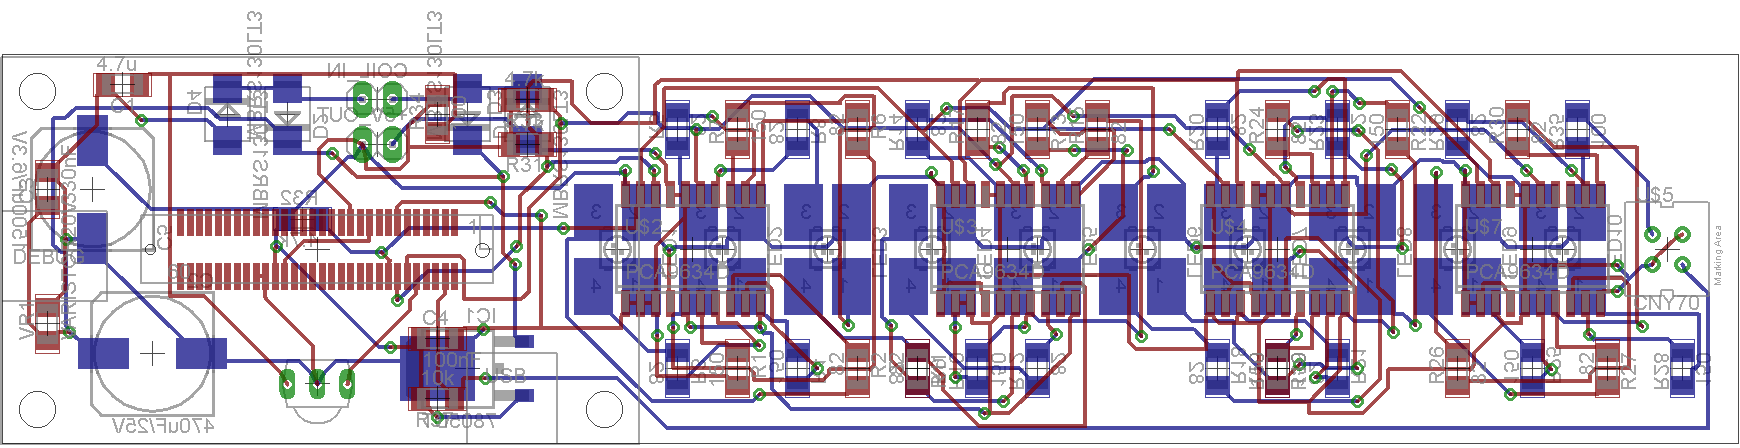 Layout of the PCB.